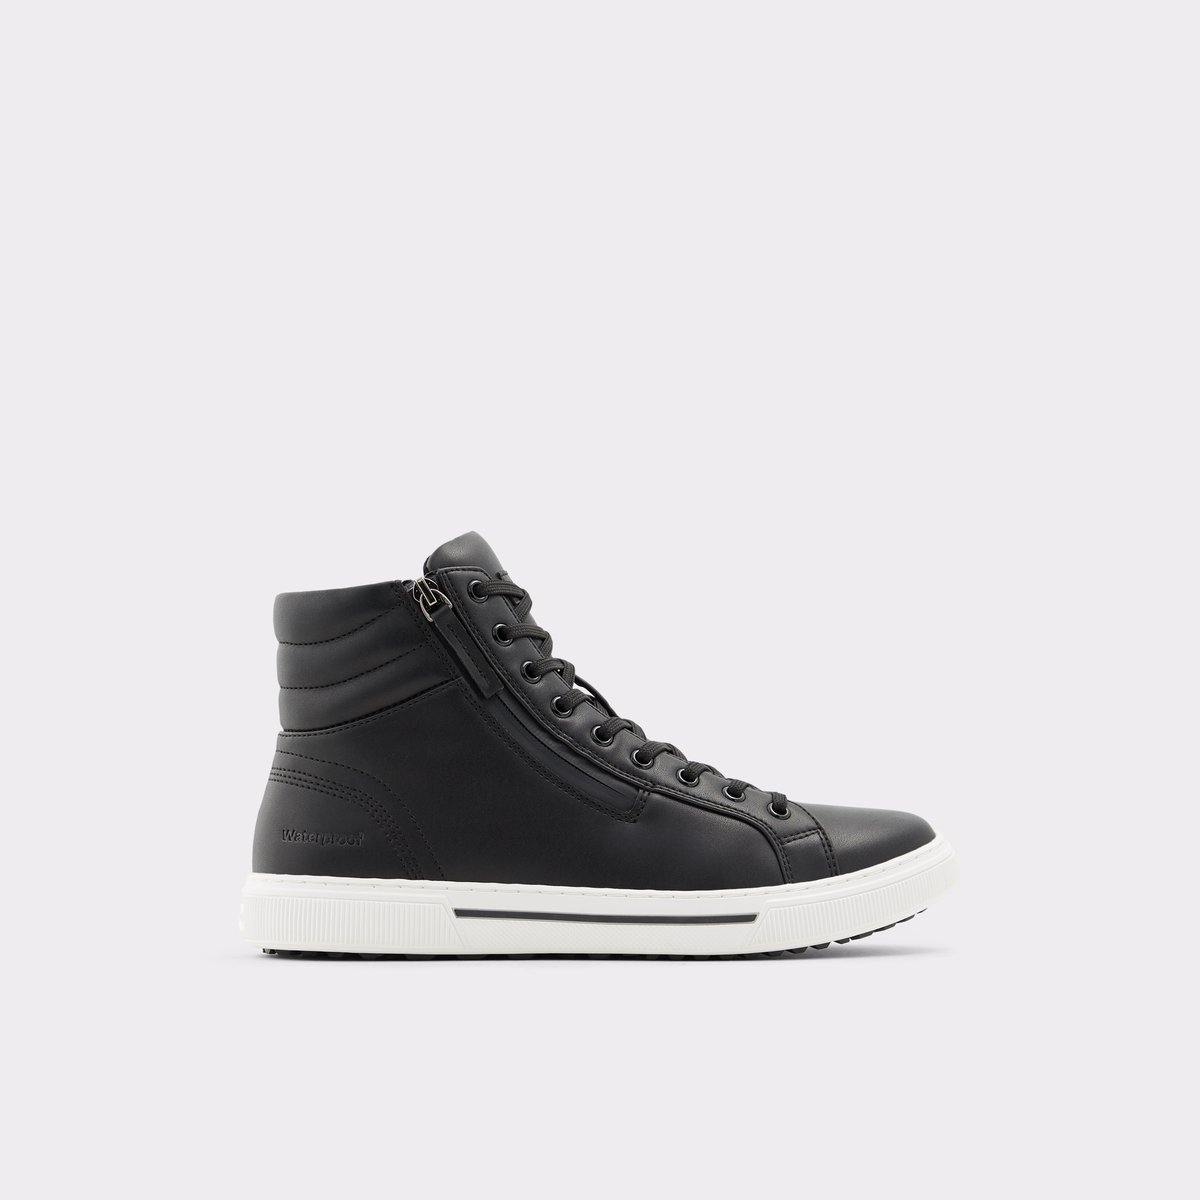 Preralith Black Synthetic Smooth Men's